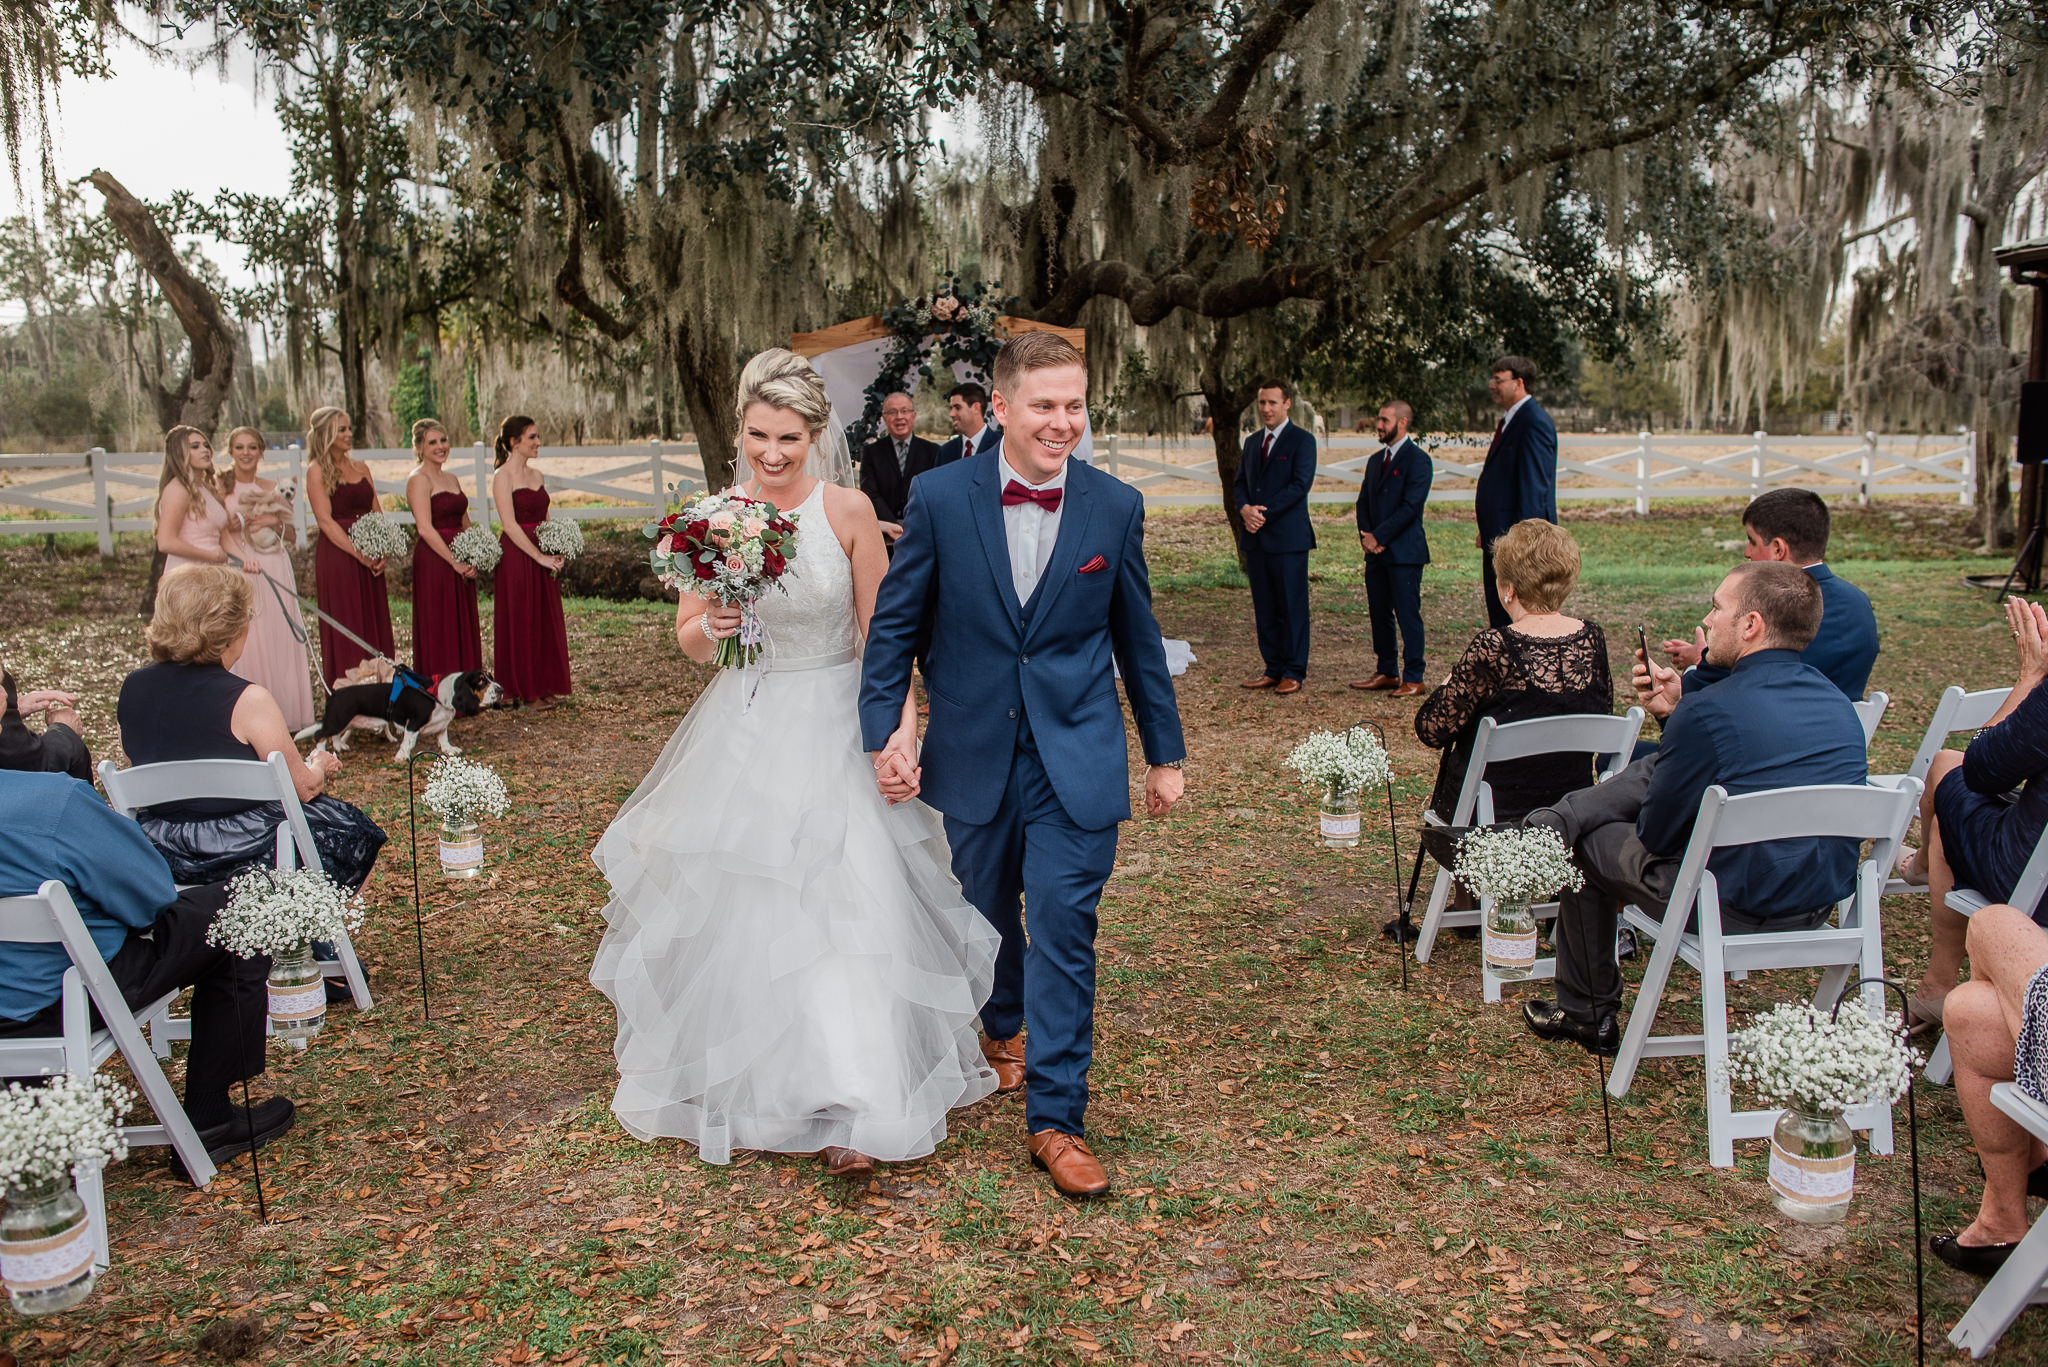 TAMPA_WEDDING_PHOTOGRAPHER_DRMZ_SPARROW_BARN_26.jpg